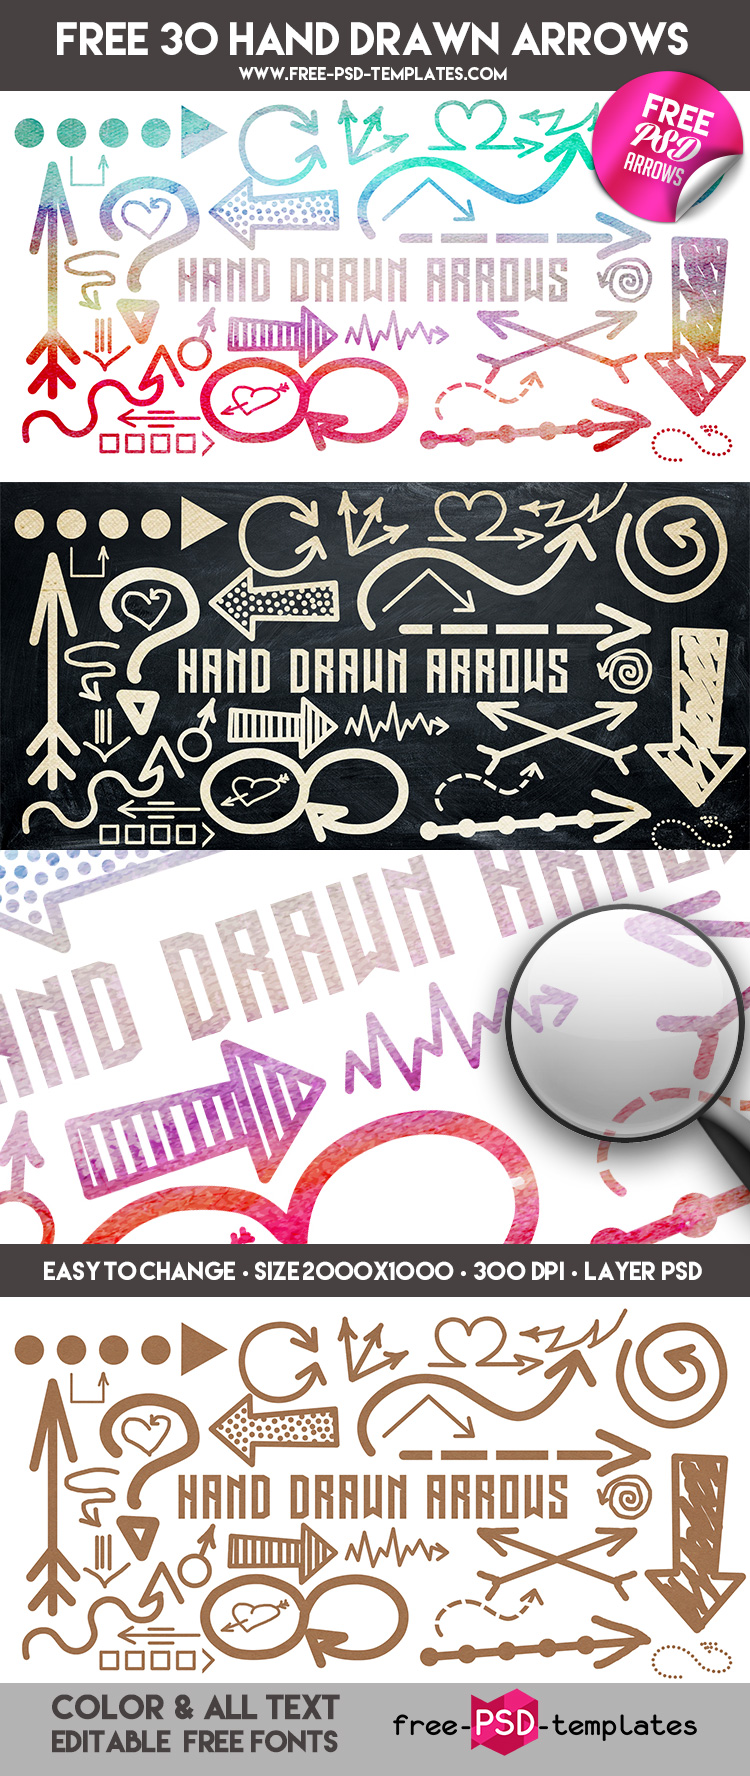 Preview_Free_30_Hand_Drawn_Arrows